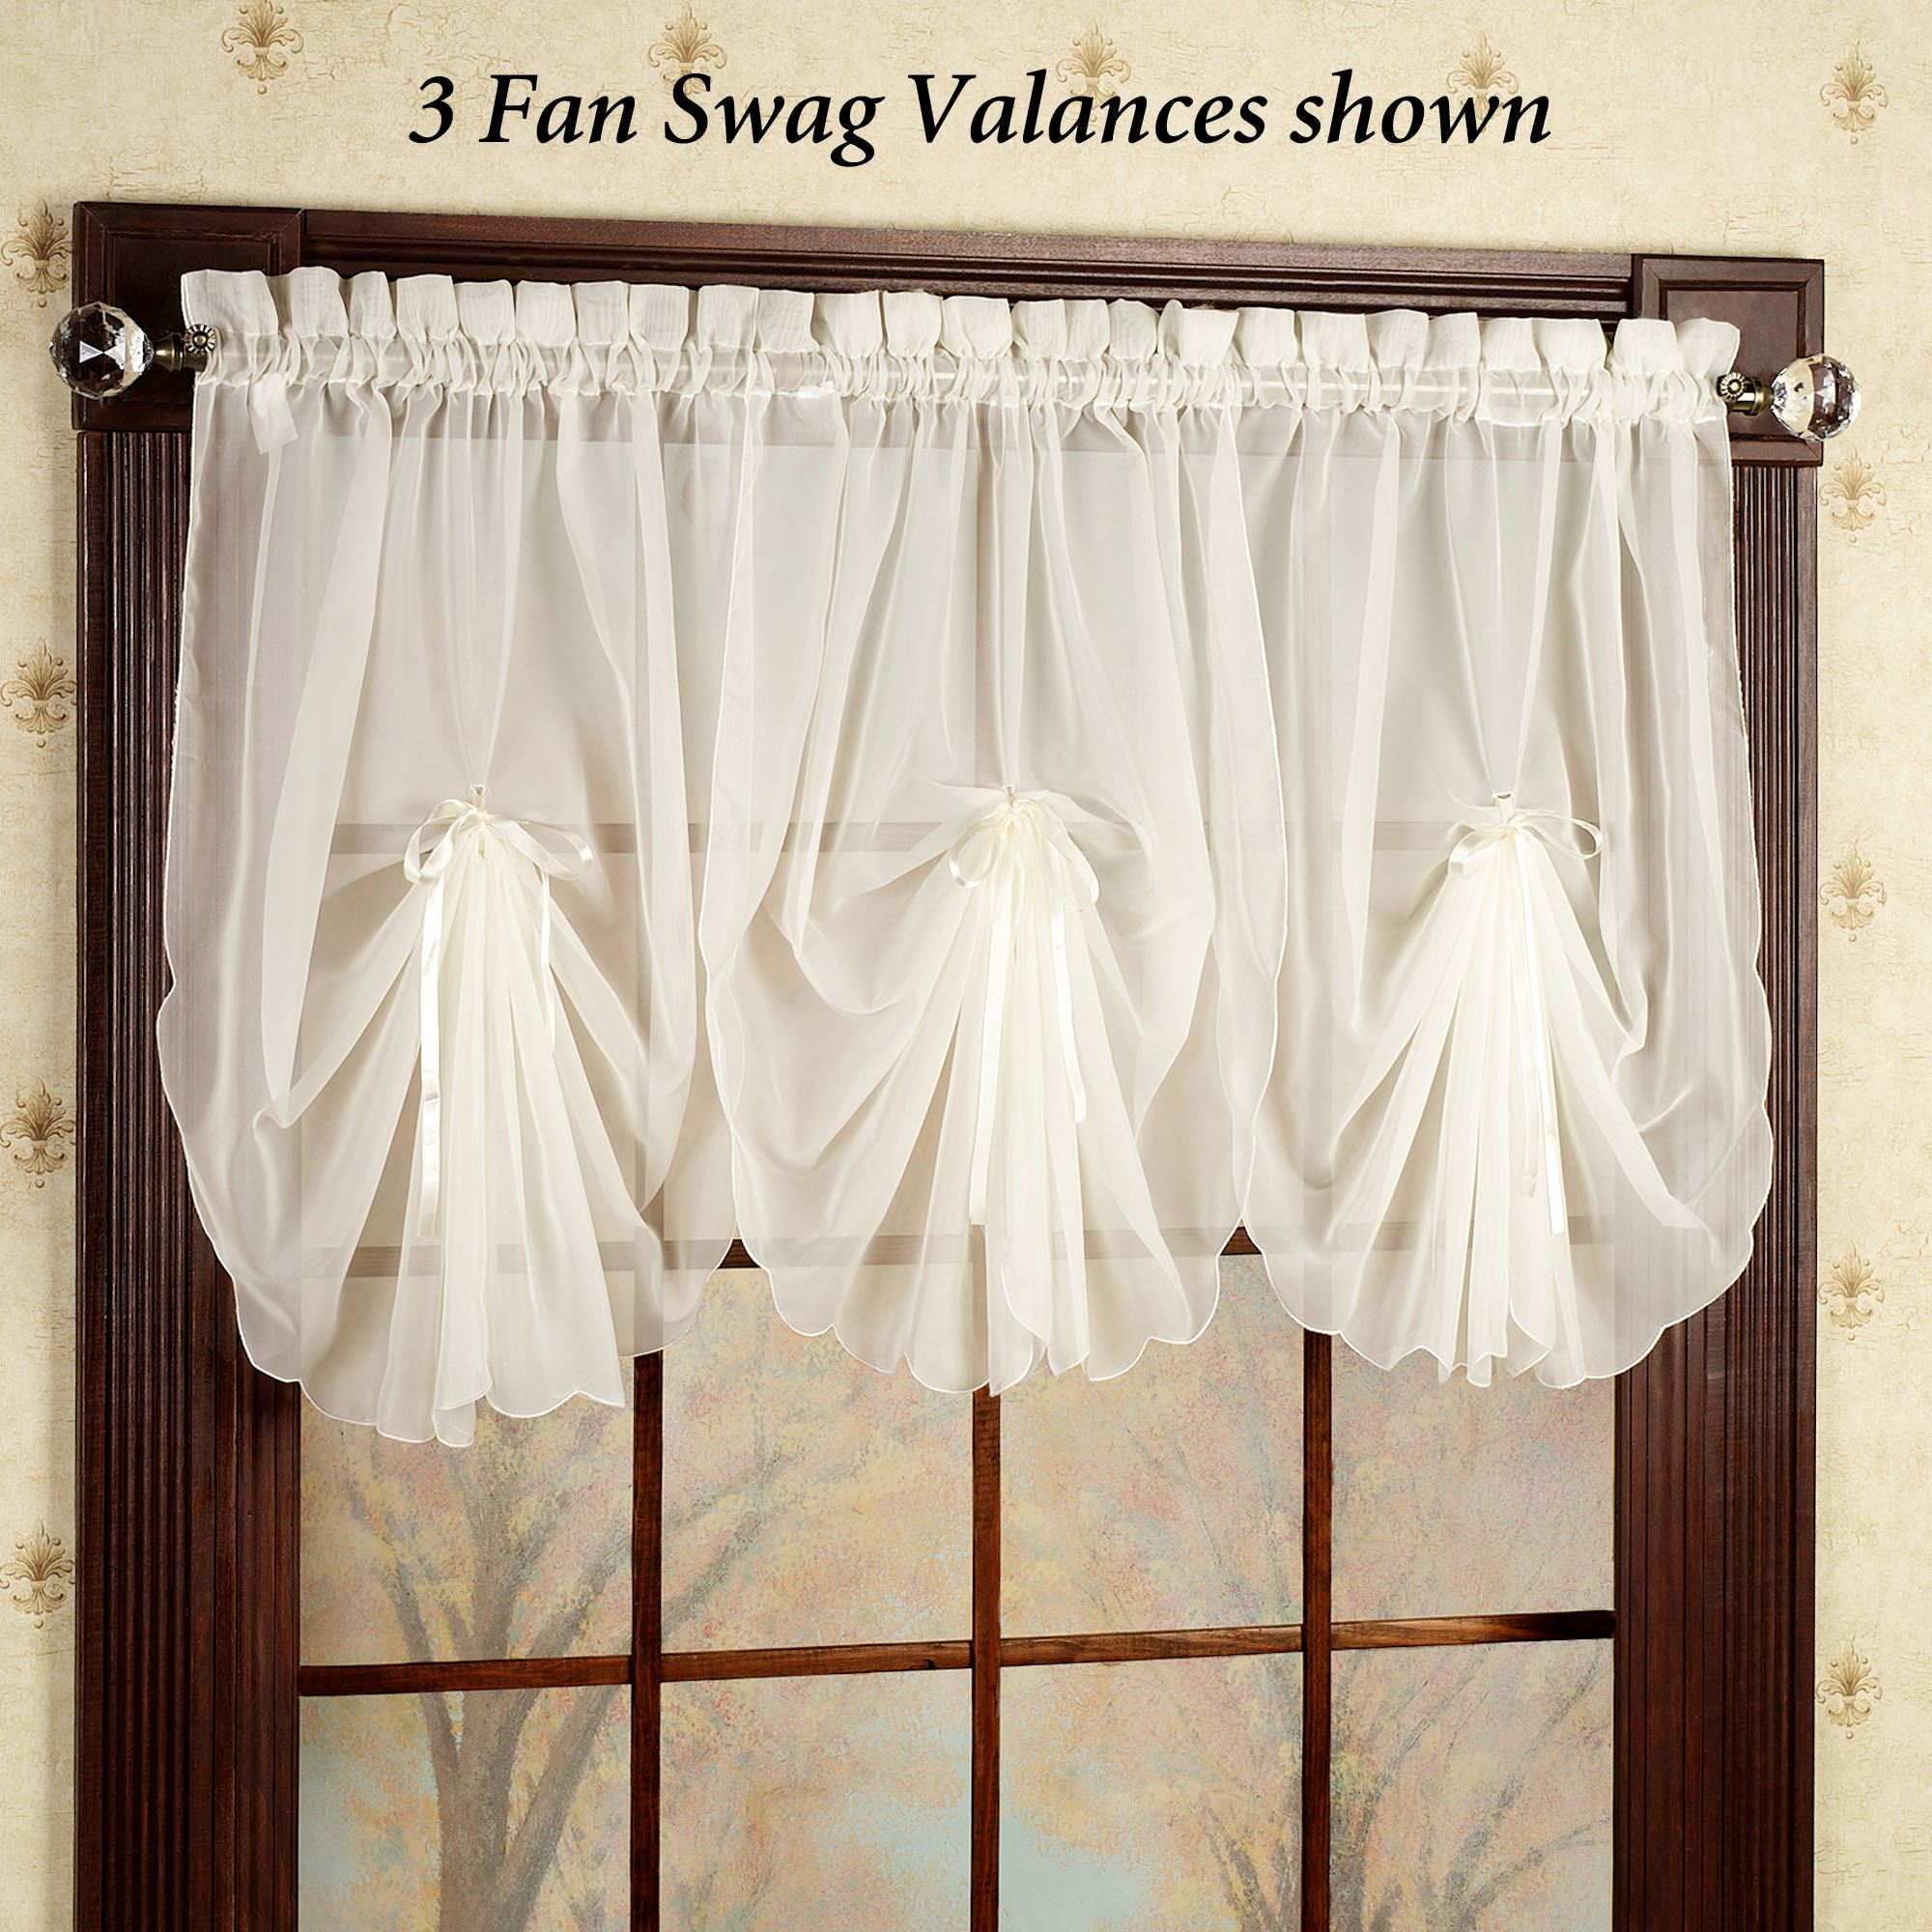 Swag Valances | Touch of Class